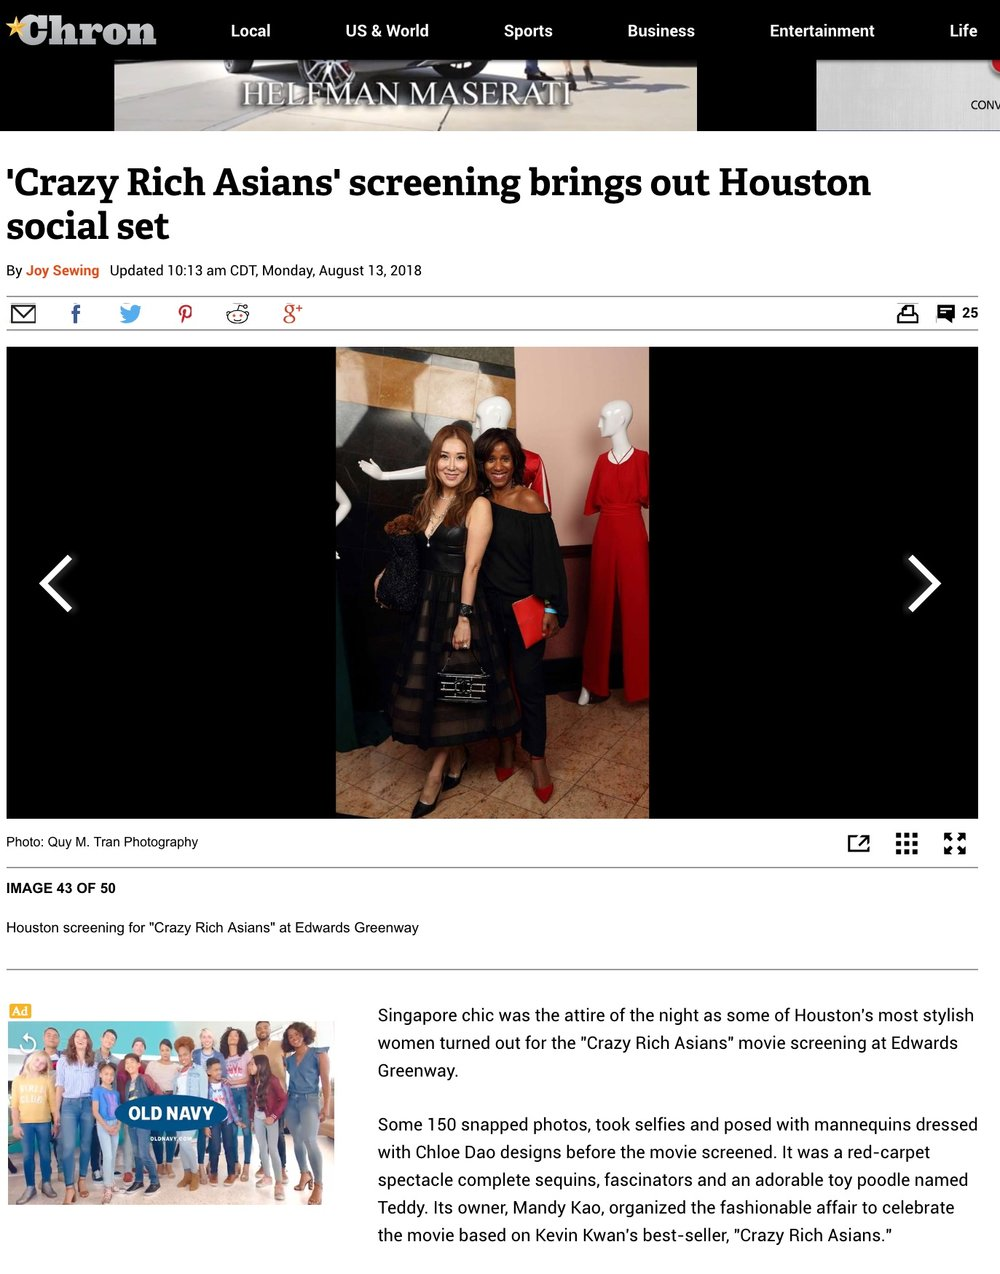 _Crazy_Rich_Asians__screening_brings_out_Houston_social_set_-_Houston_Chronicle3.jpg